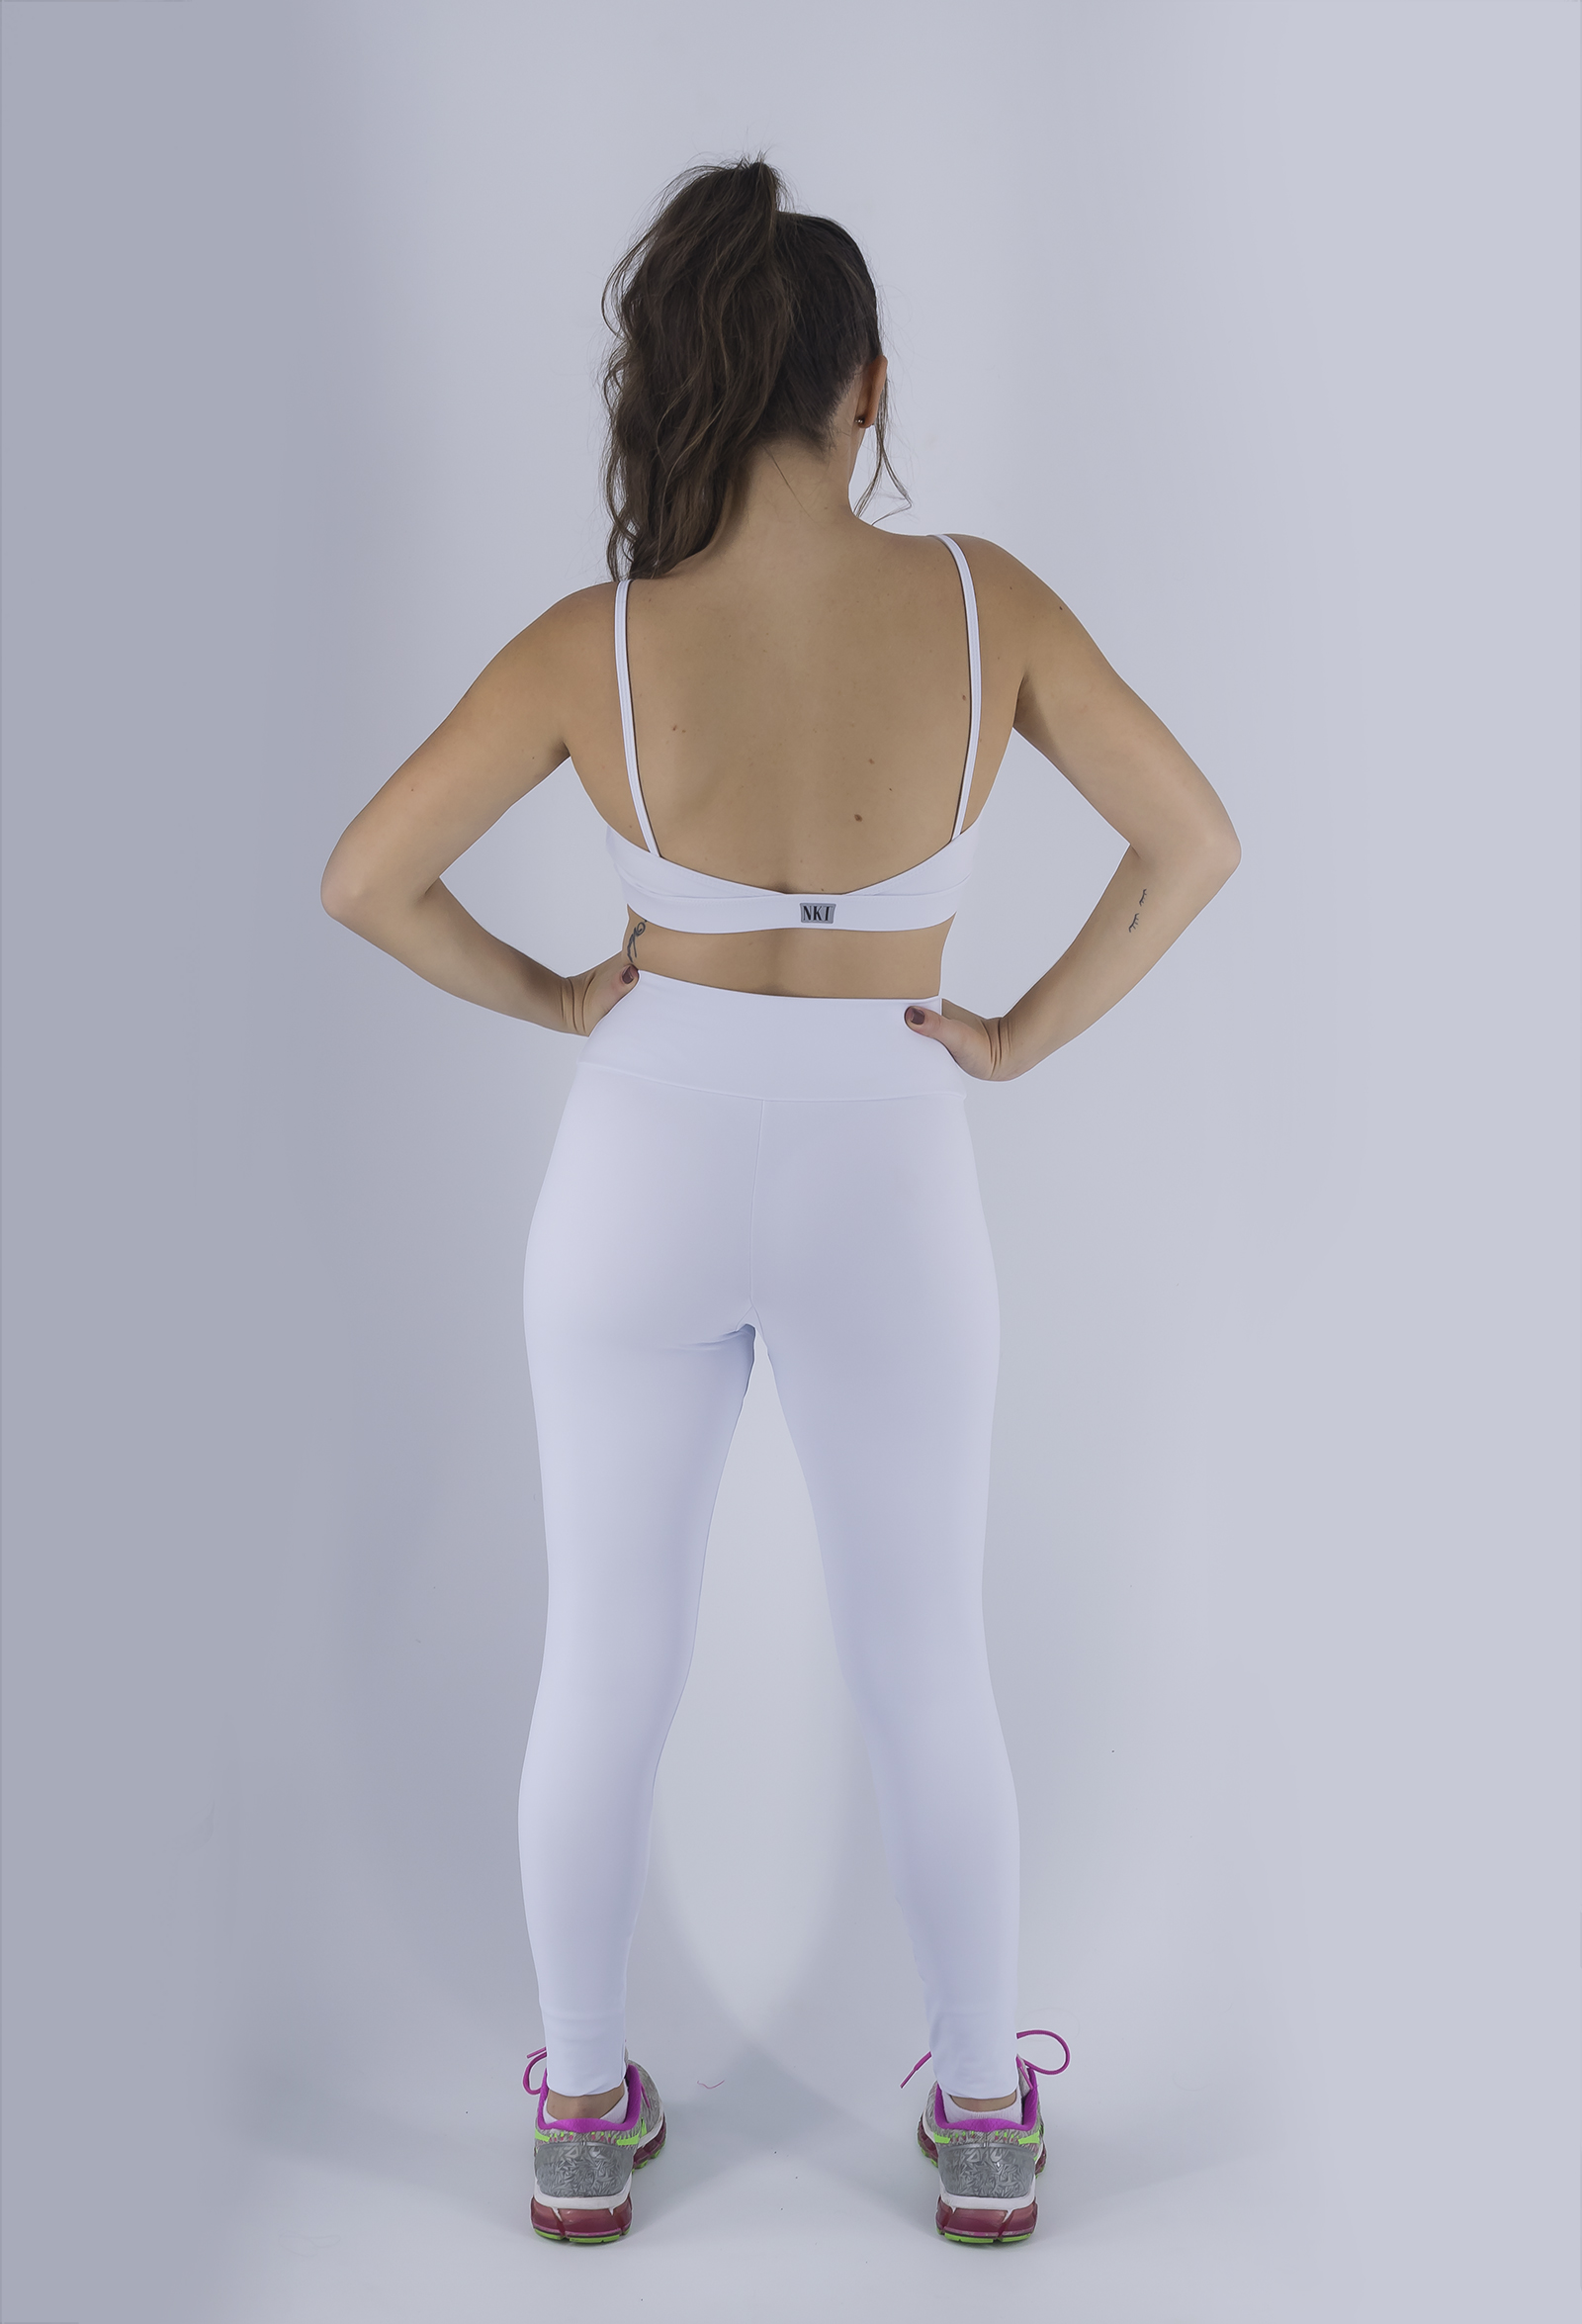 Legging NKT Branca, Coleção Just For You - NKT Fitwear Moda Fitness